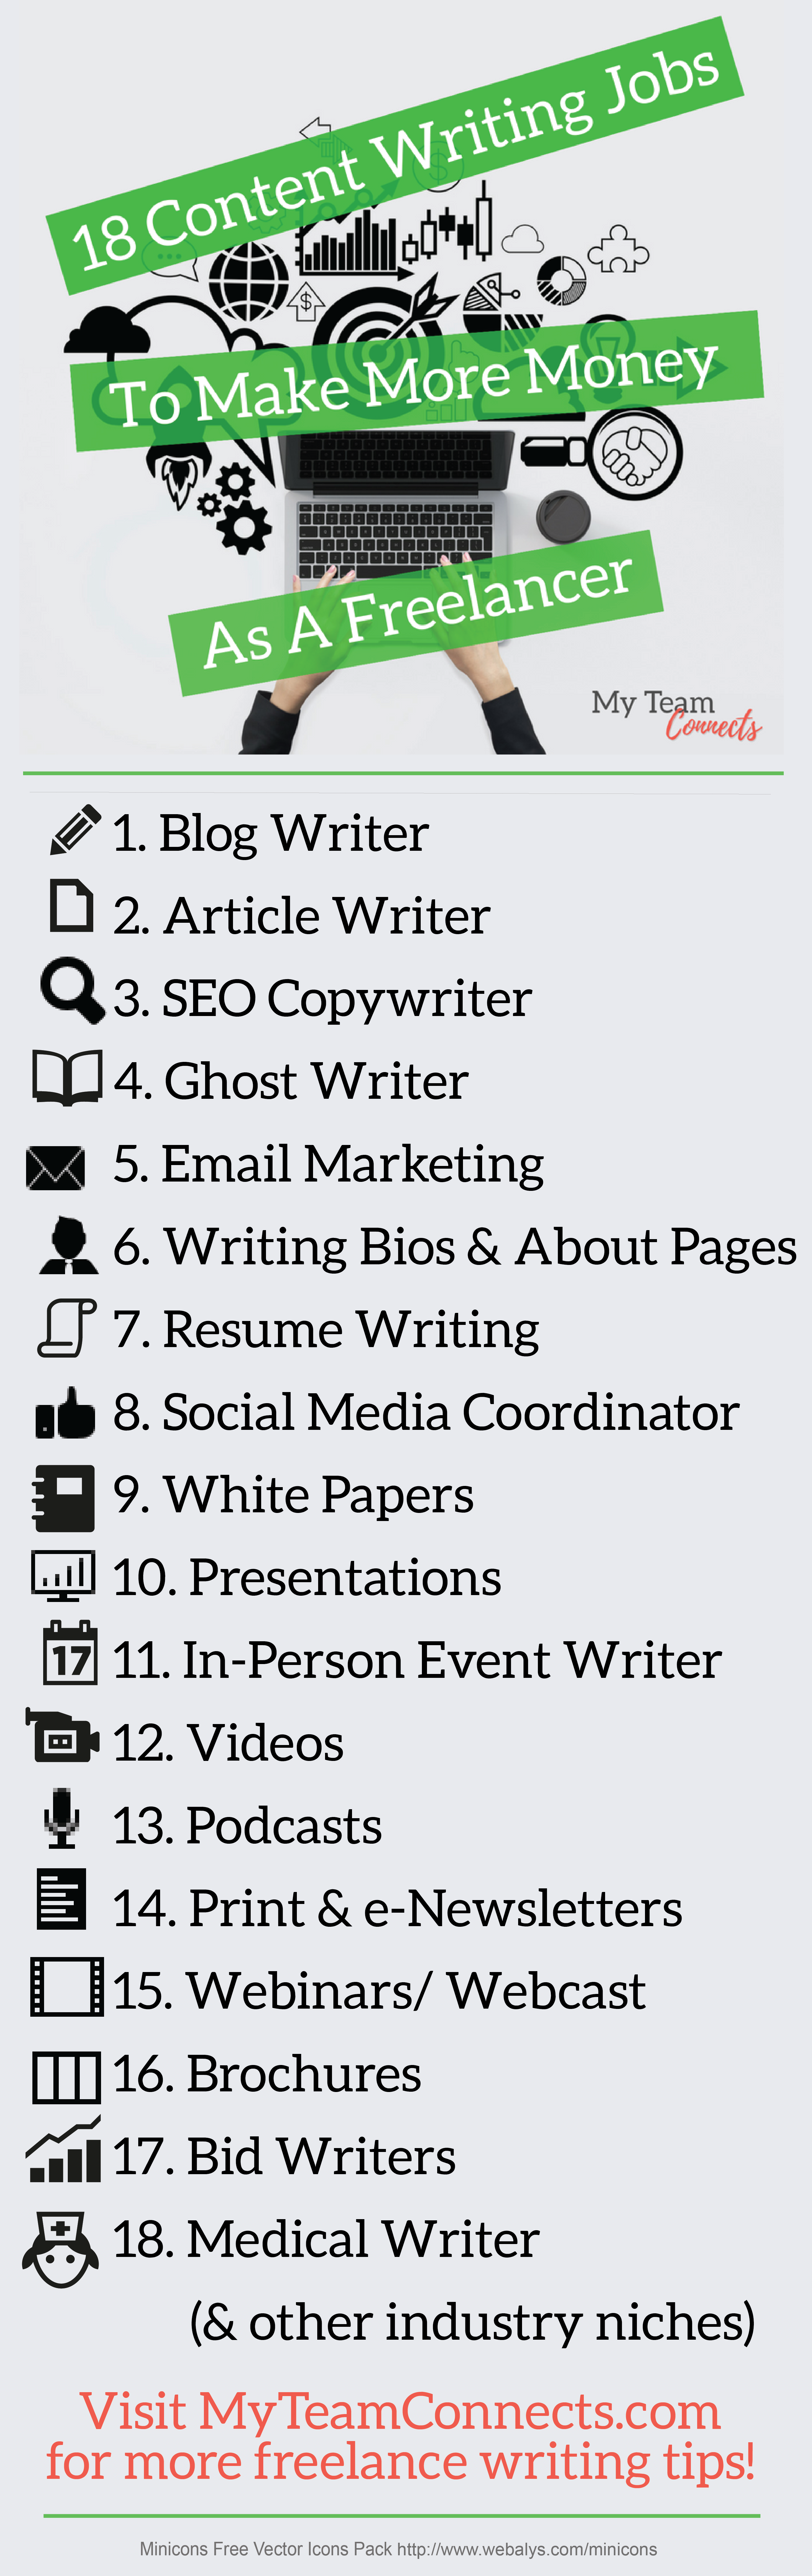 18 content writing jobs infographic2-01